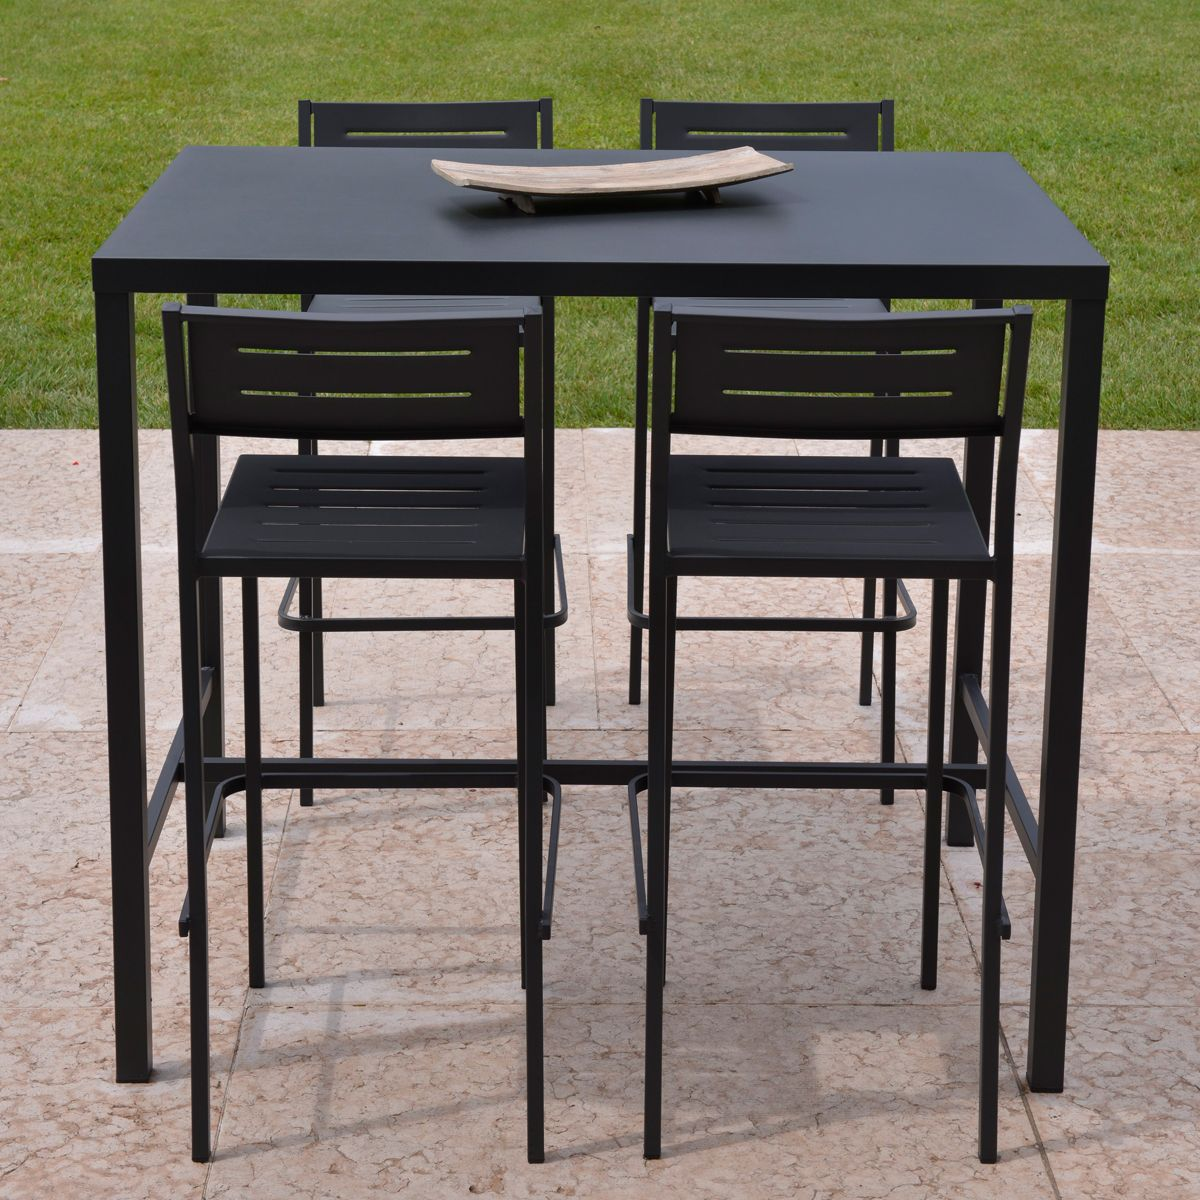 Ensemble de jardin table haute tabouret dorio rd italia for Tabouret et table haute